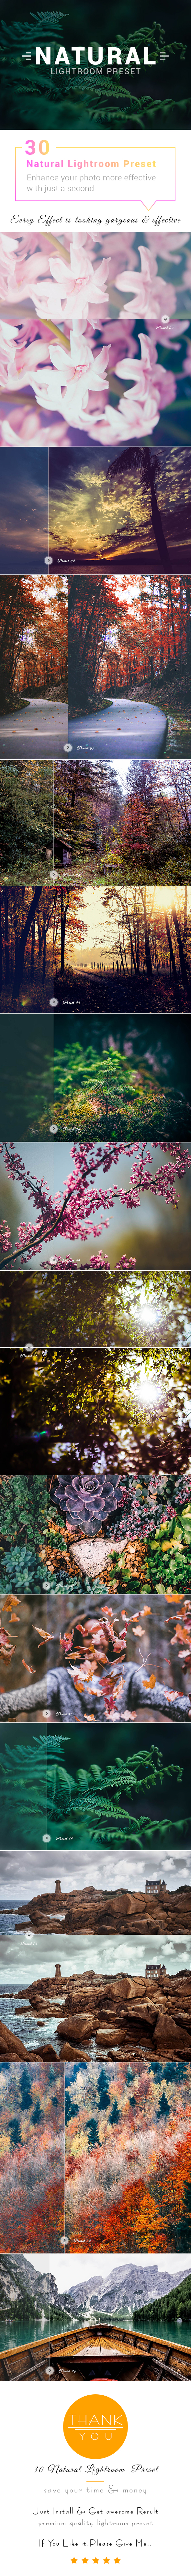 Natural Lightroom Effects - Landscape Lightroom Presets